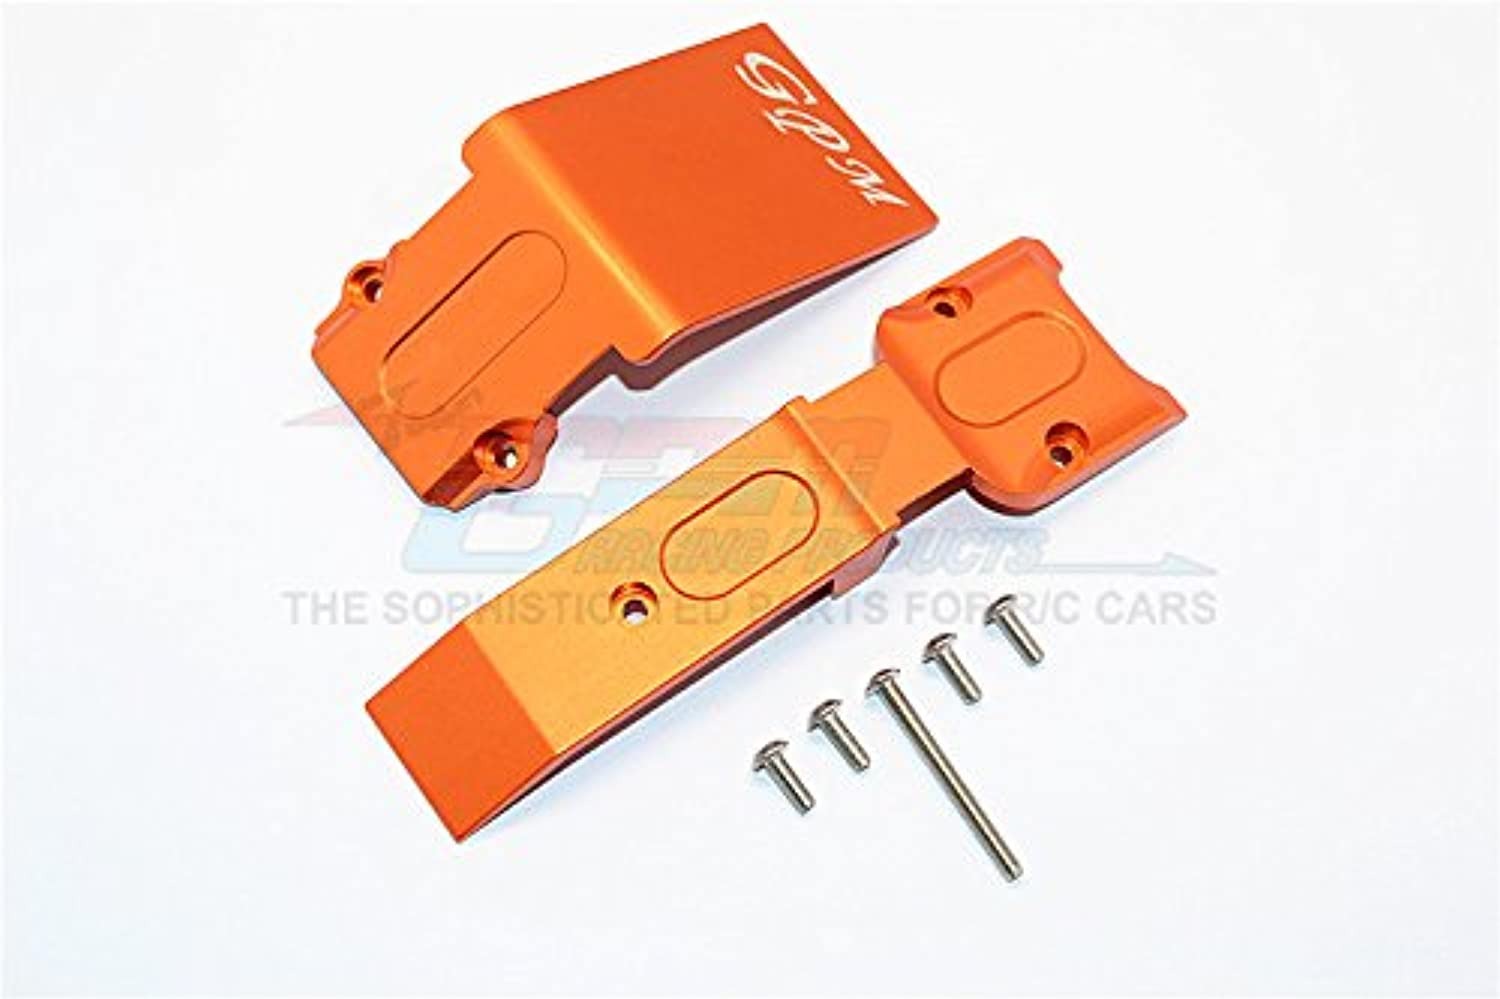 Traxxas E-Revo Brushless Edition Upgrade Parts Aluminum Front Skid Plate - 2Pcs Set orange